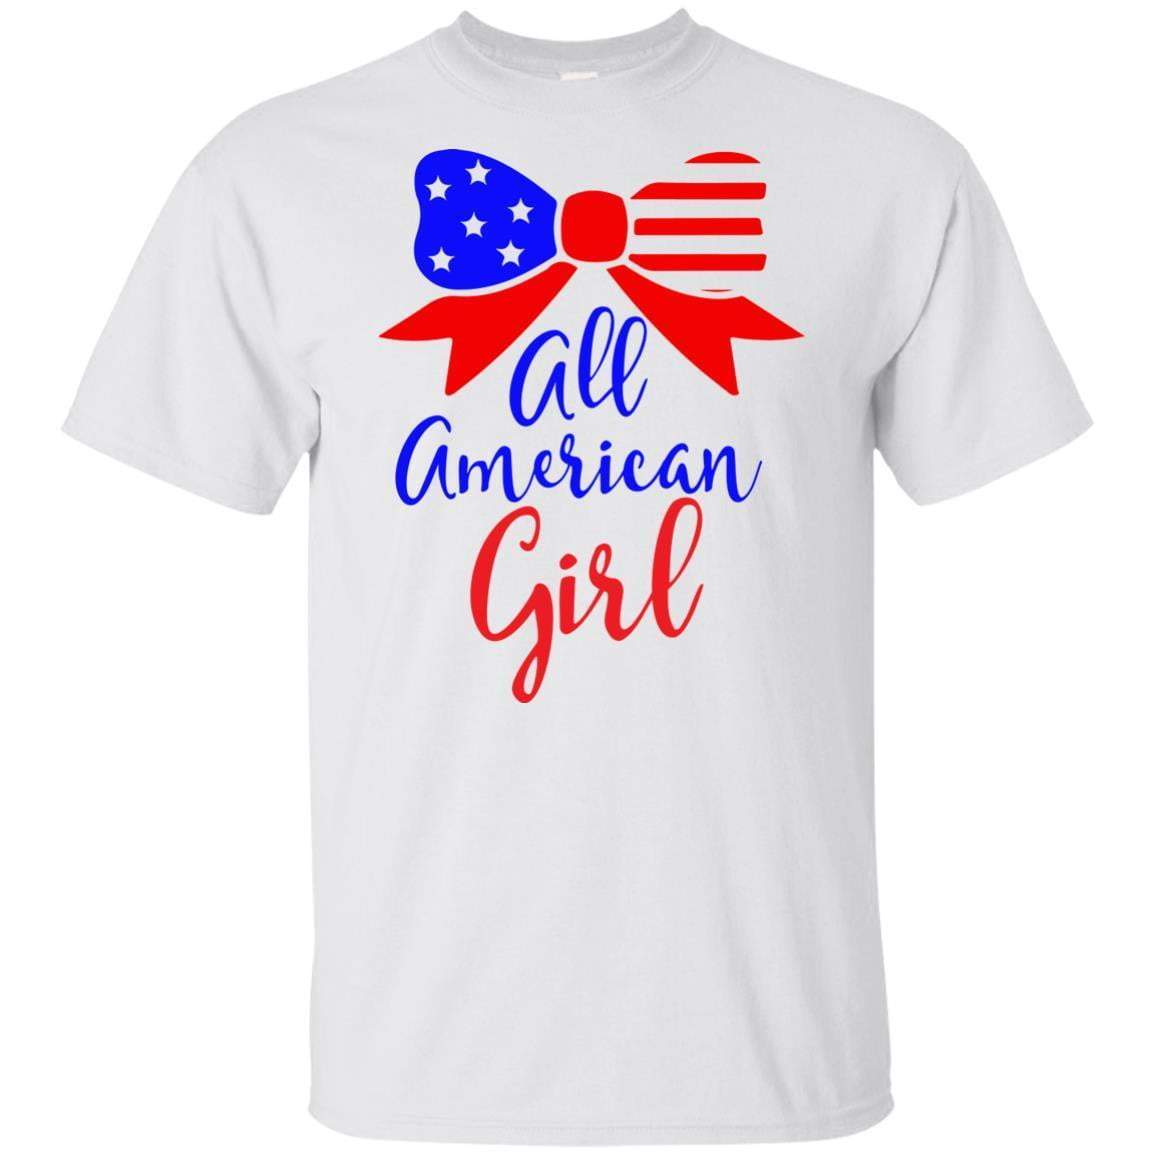 All American Girl KIDS